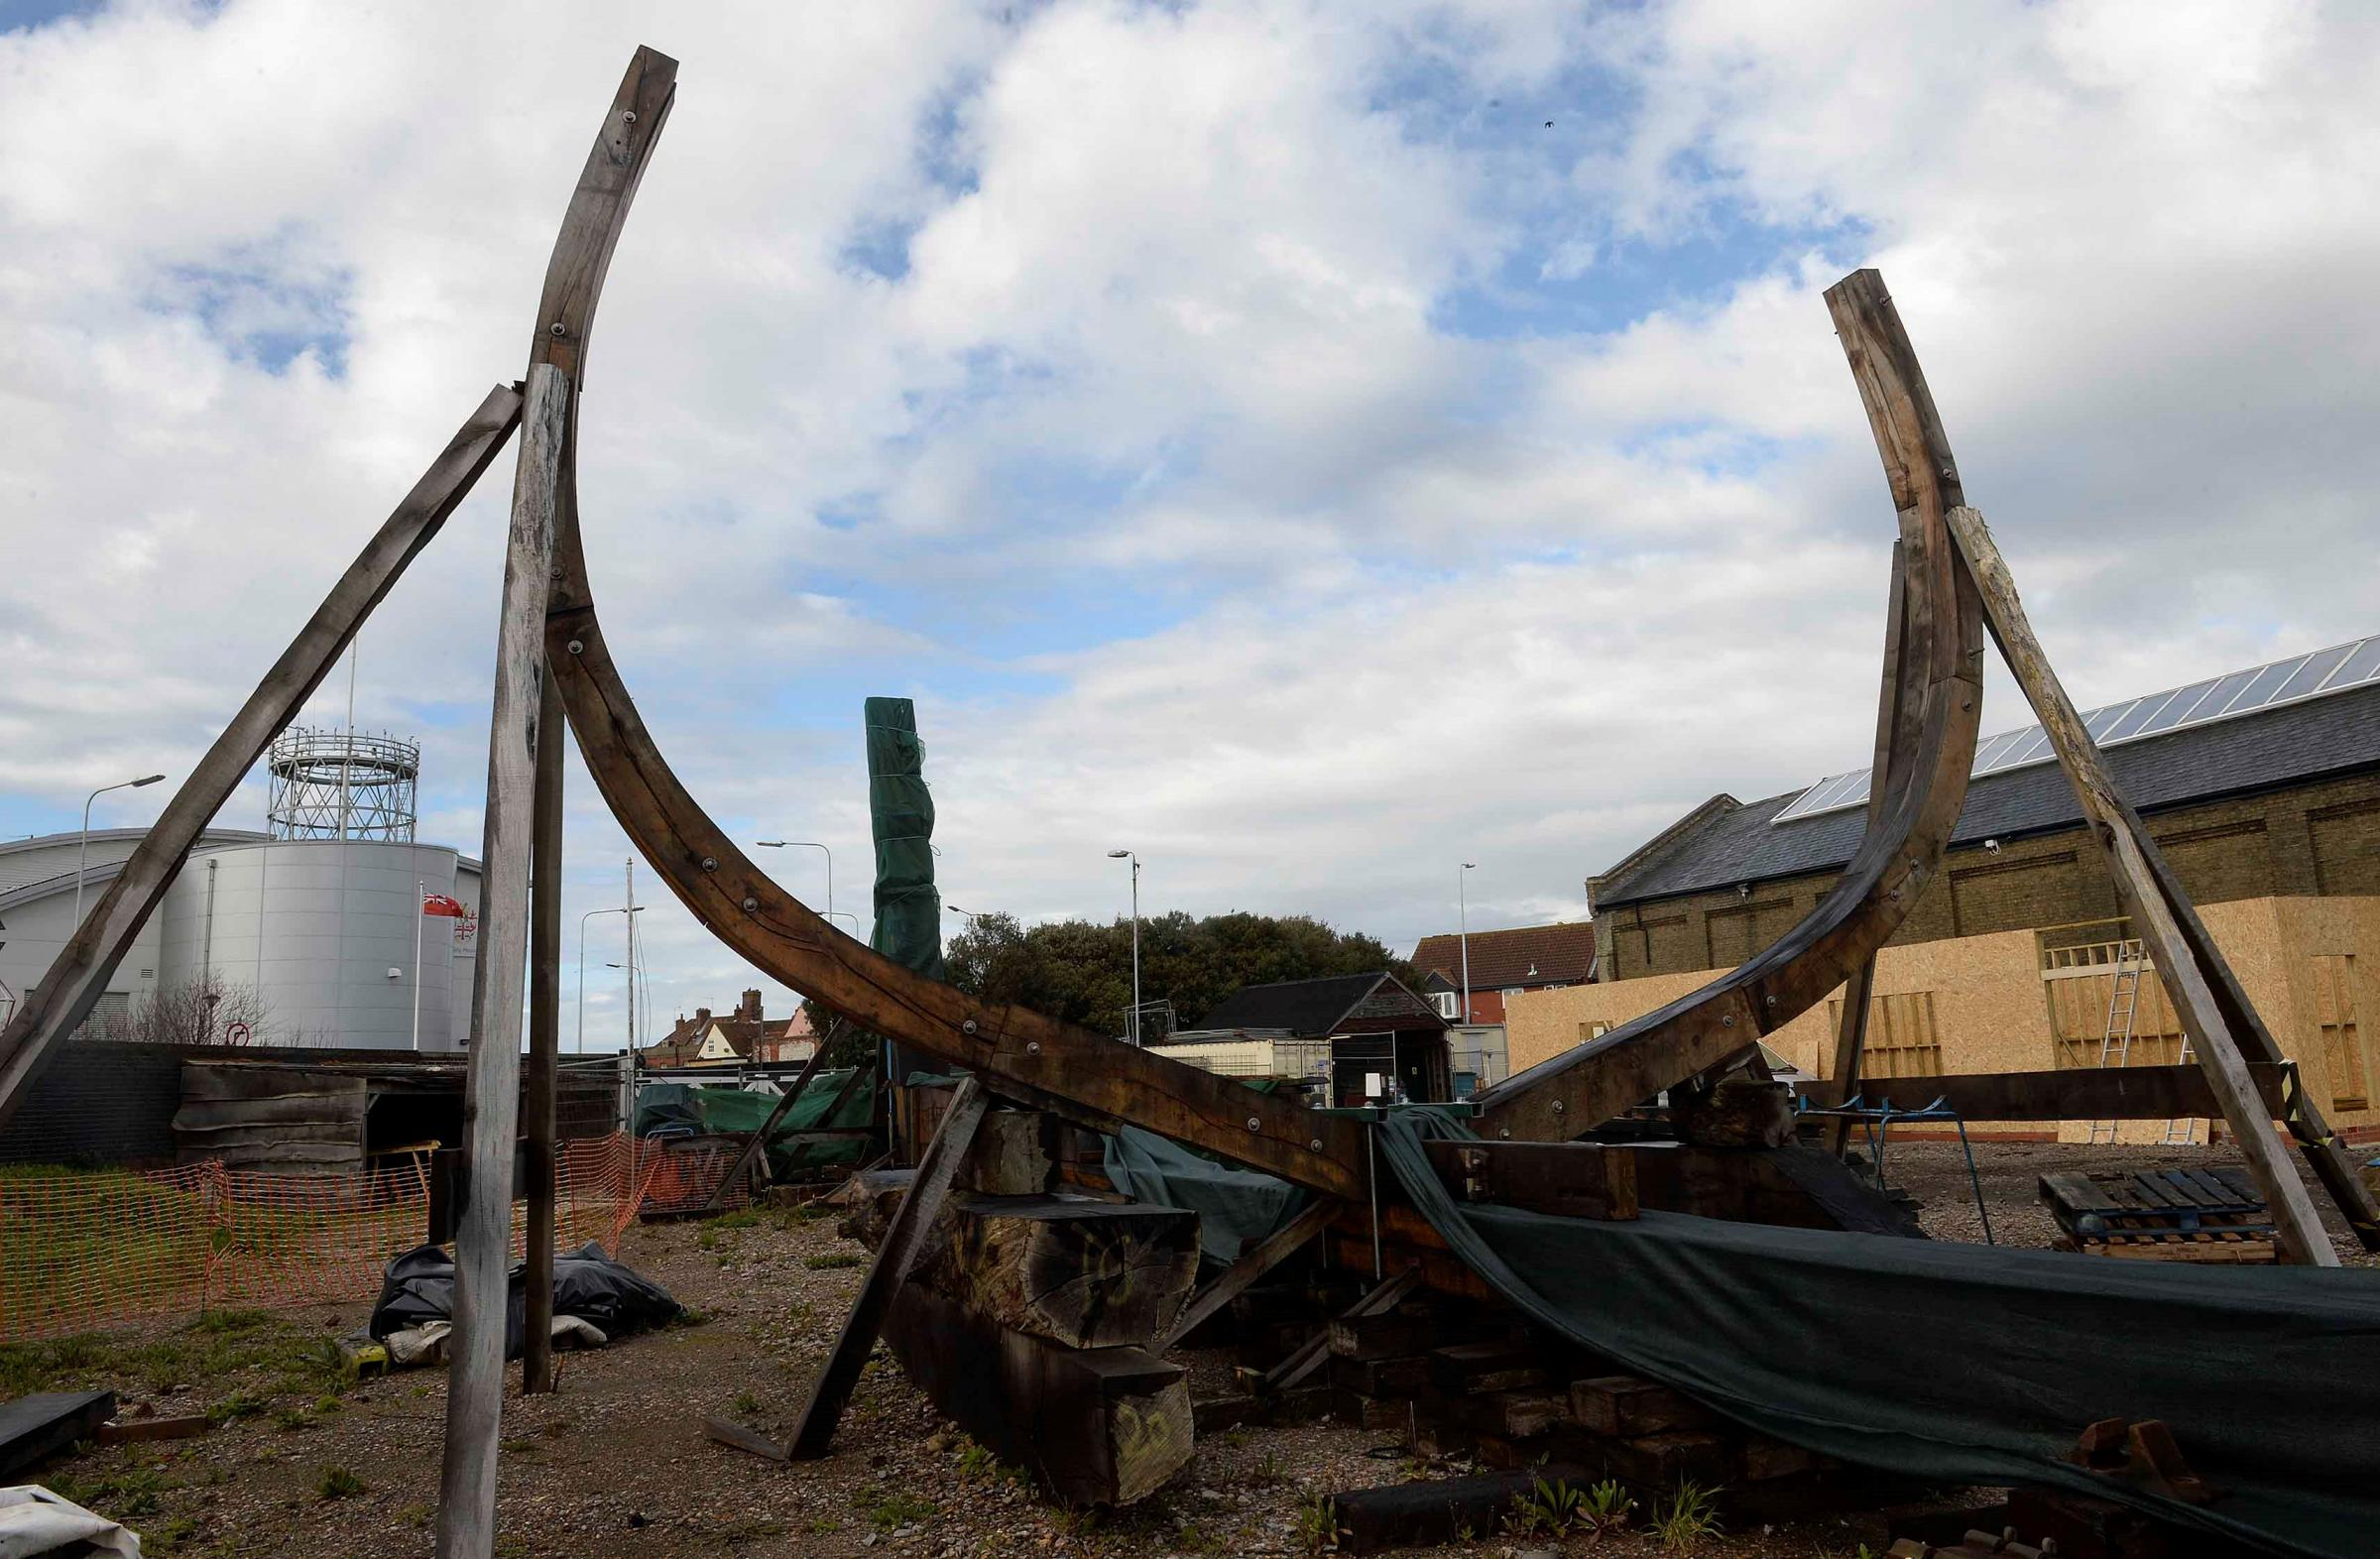 The Harwich Mayflower Project aims to build a full-size ocean-going replica of the English merchant ship that took the Pilgrim Fathers to America in 1620.